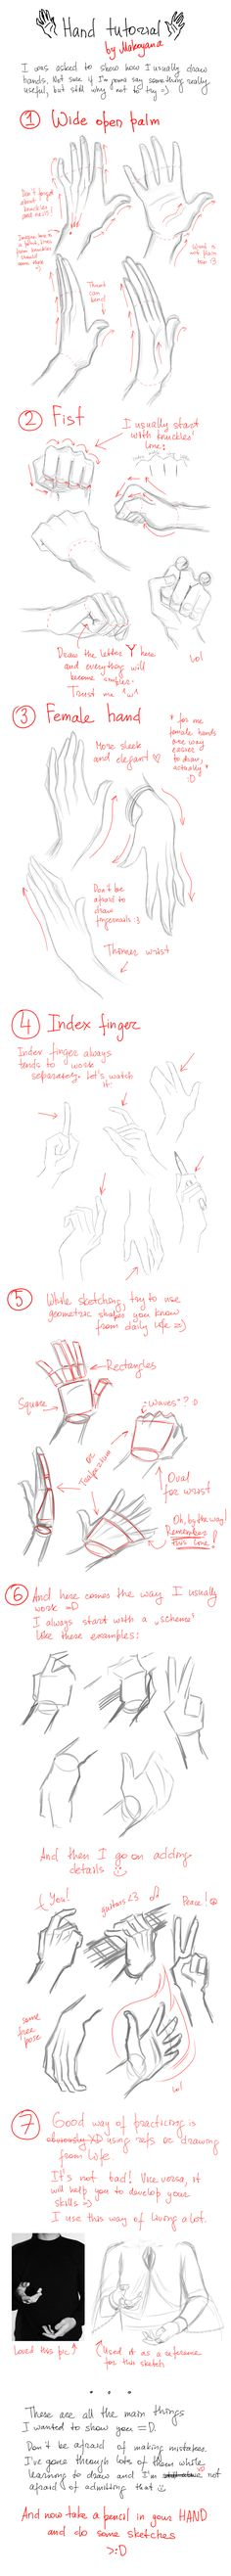 Hands tutorial. Helpful.